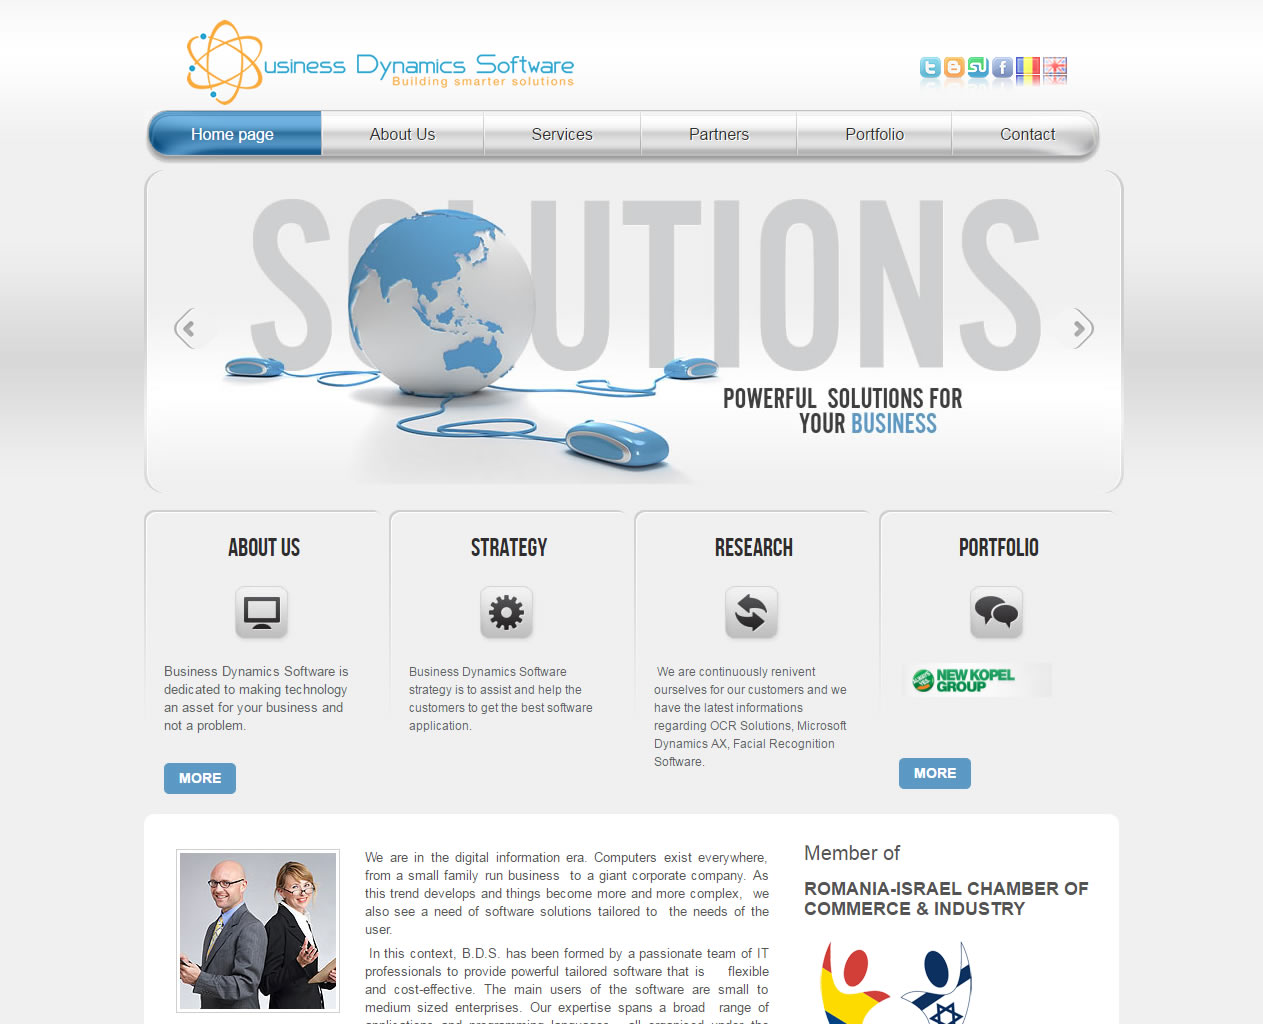 Business Dynamics Software